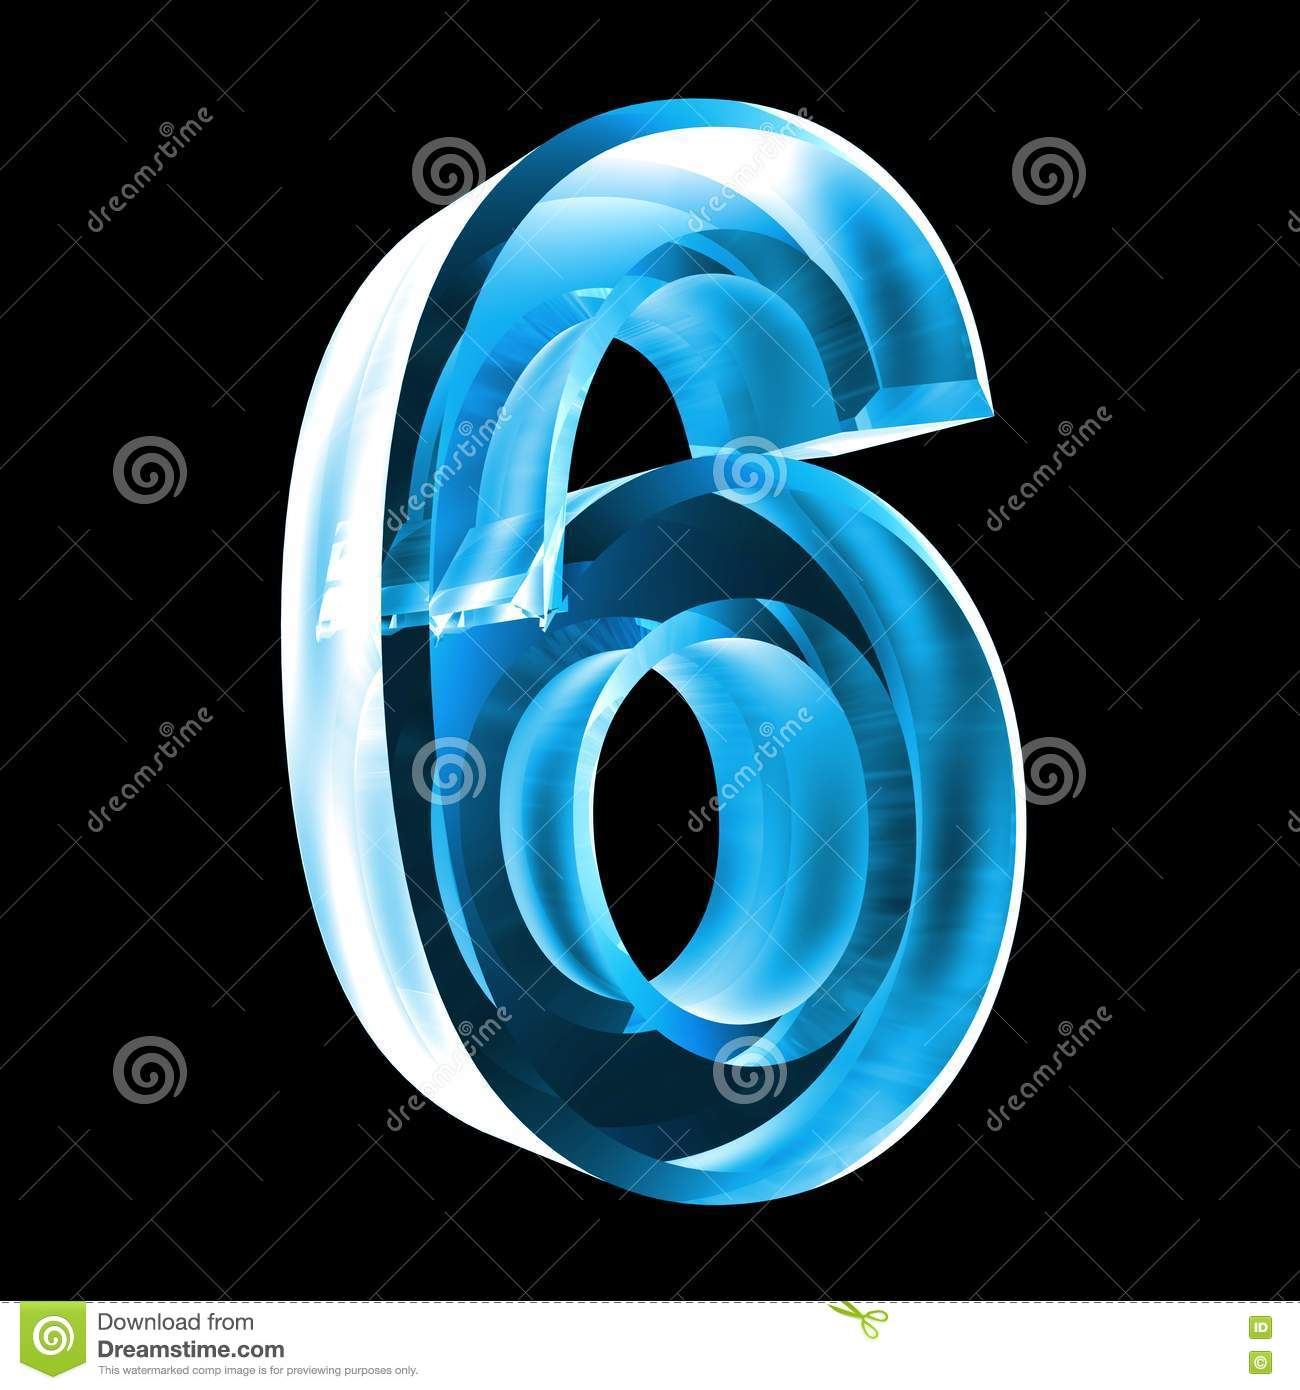 3d Number 6 In Blue Glass Stock Image - Image: 6205631